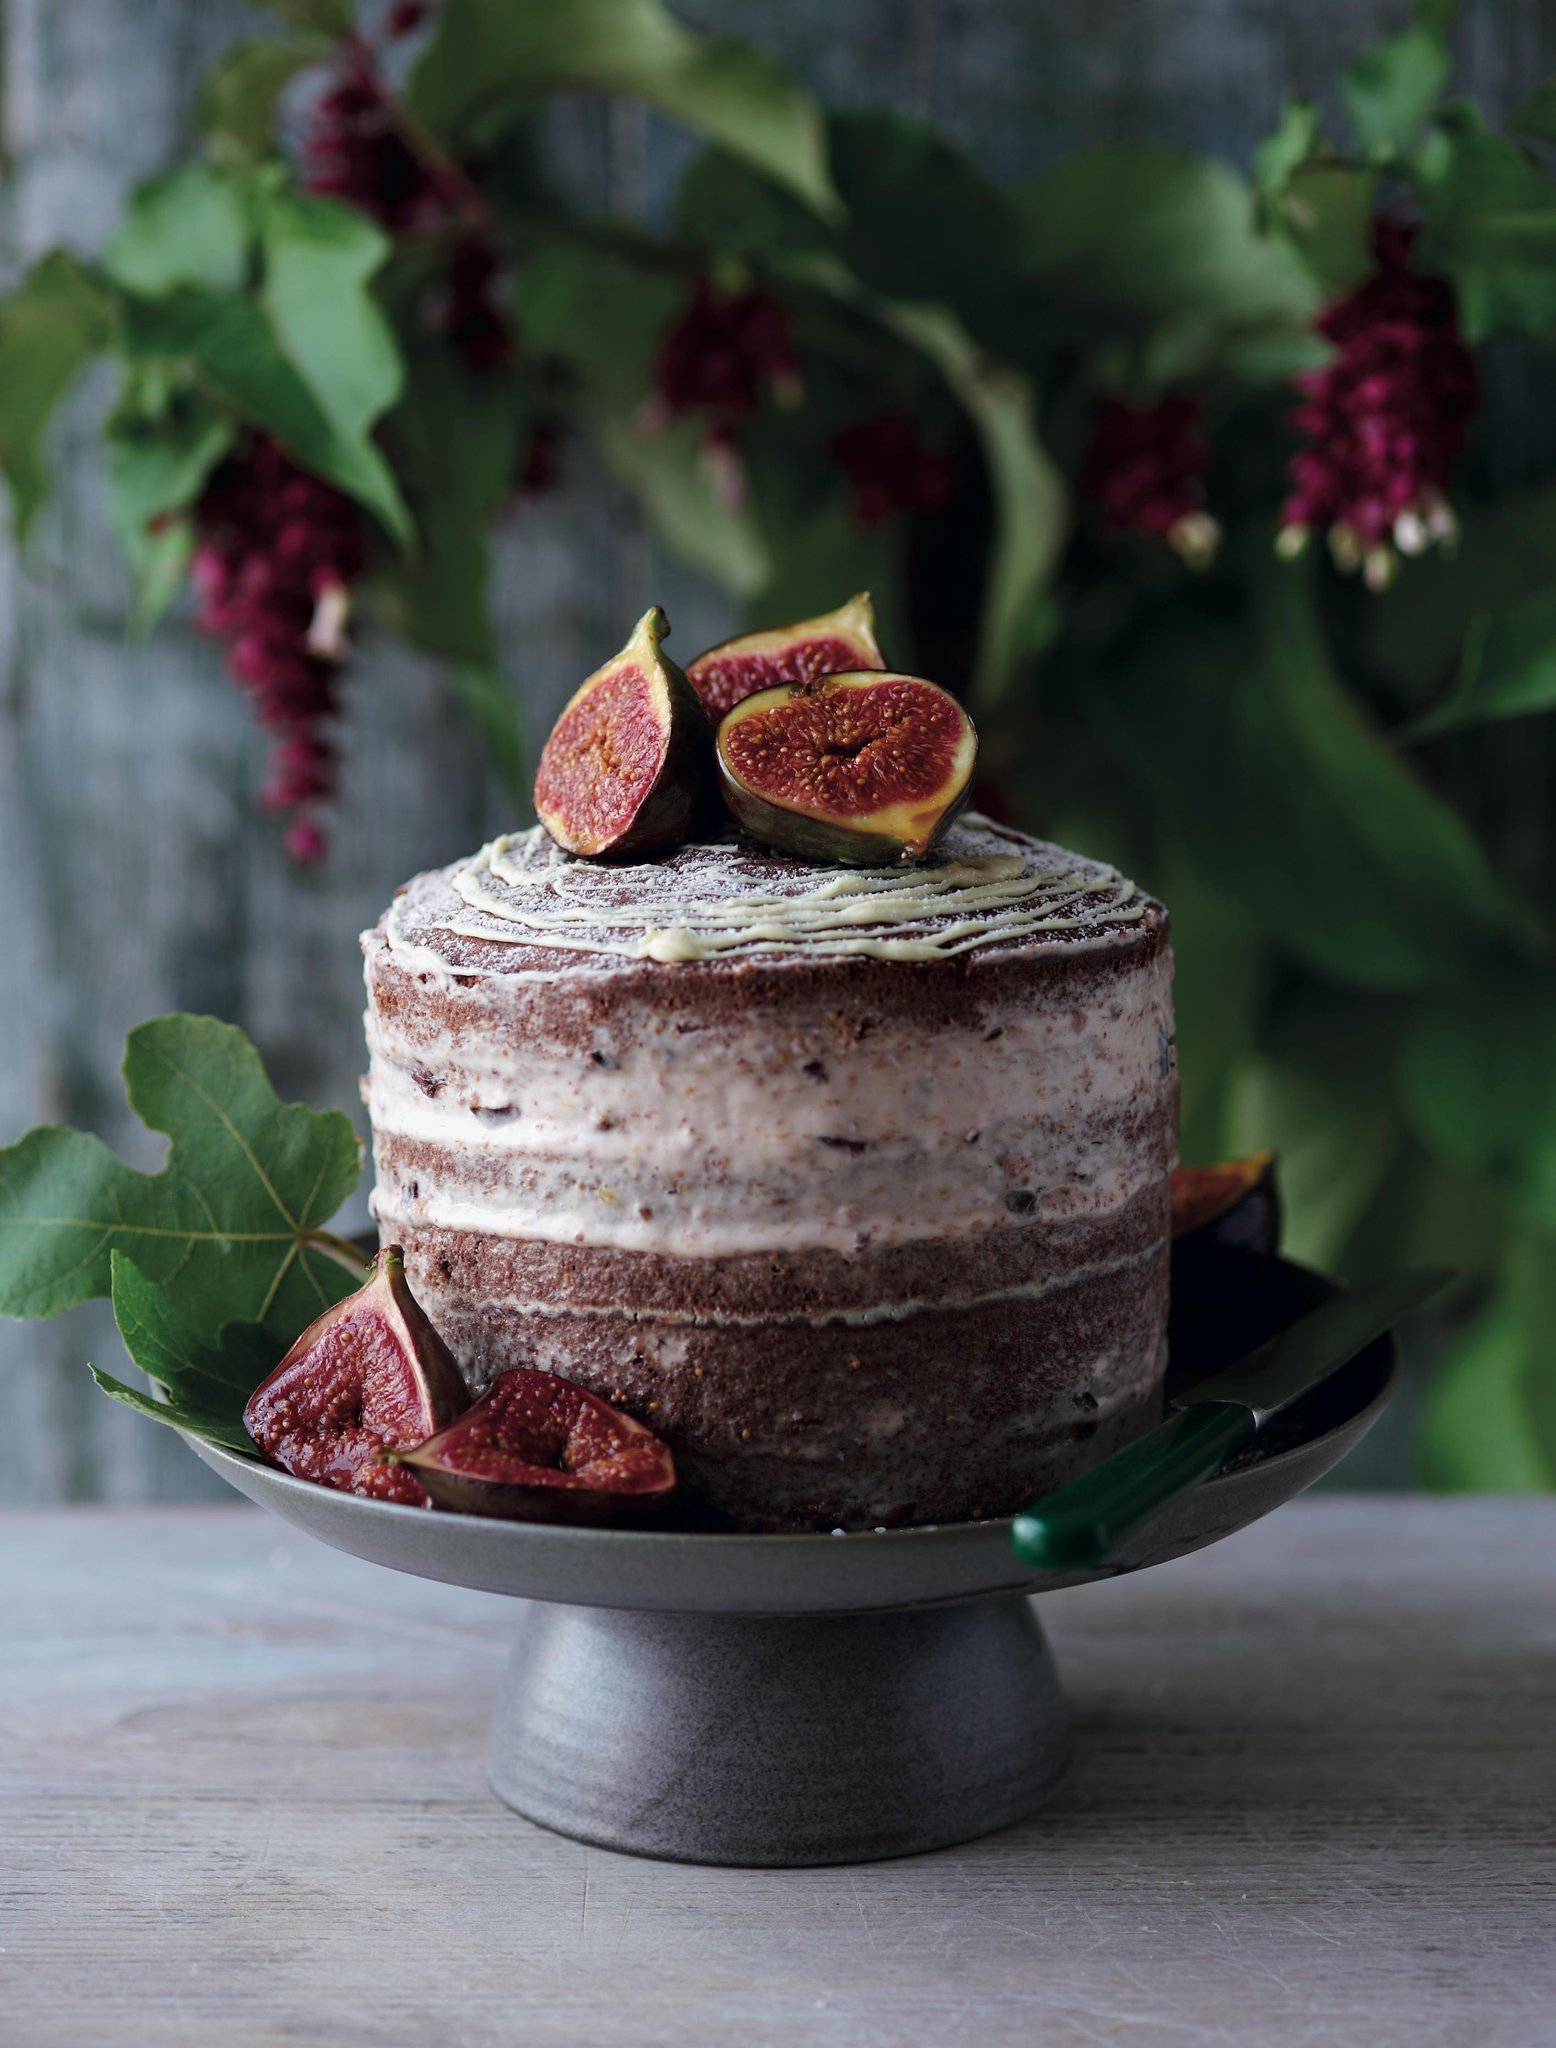 Have you tried the naked cake trend yet? Then let us introduce: naked chocolate cake http://t.co/UkkLi0si75 http://t.co/jAgkl0zIJR